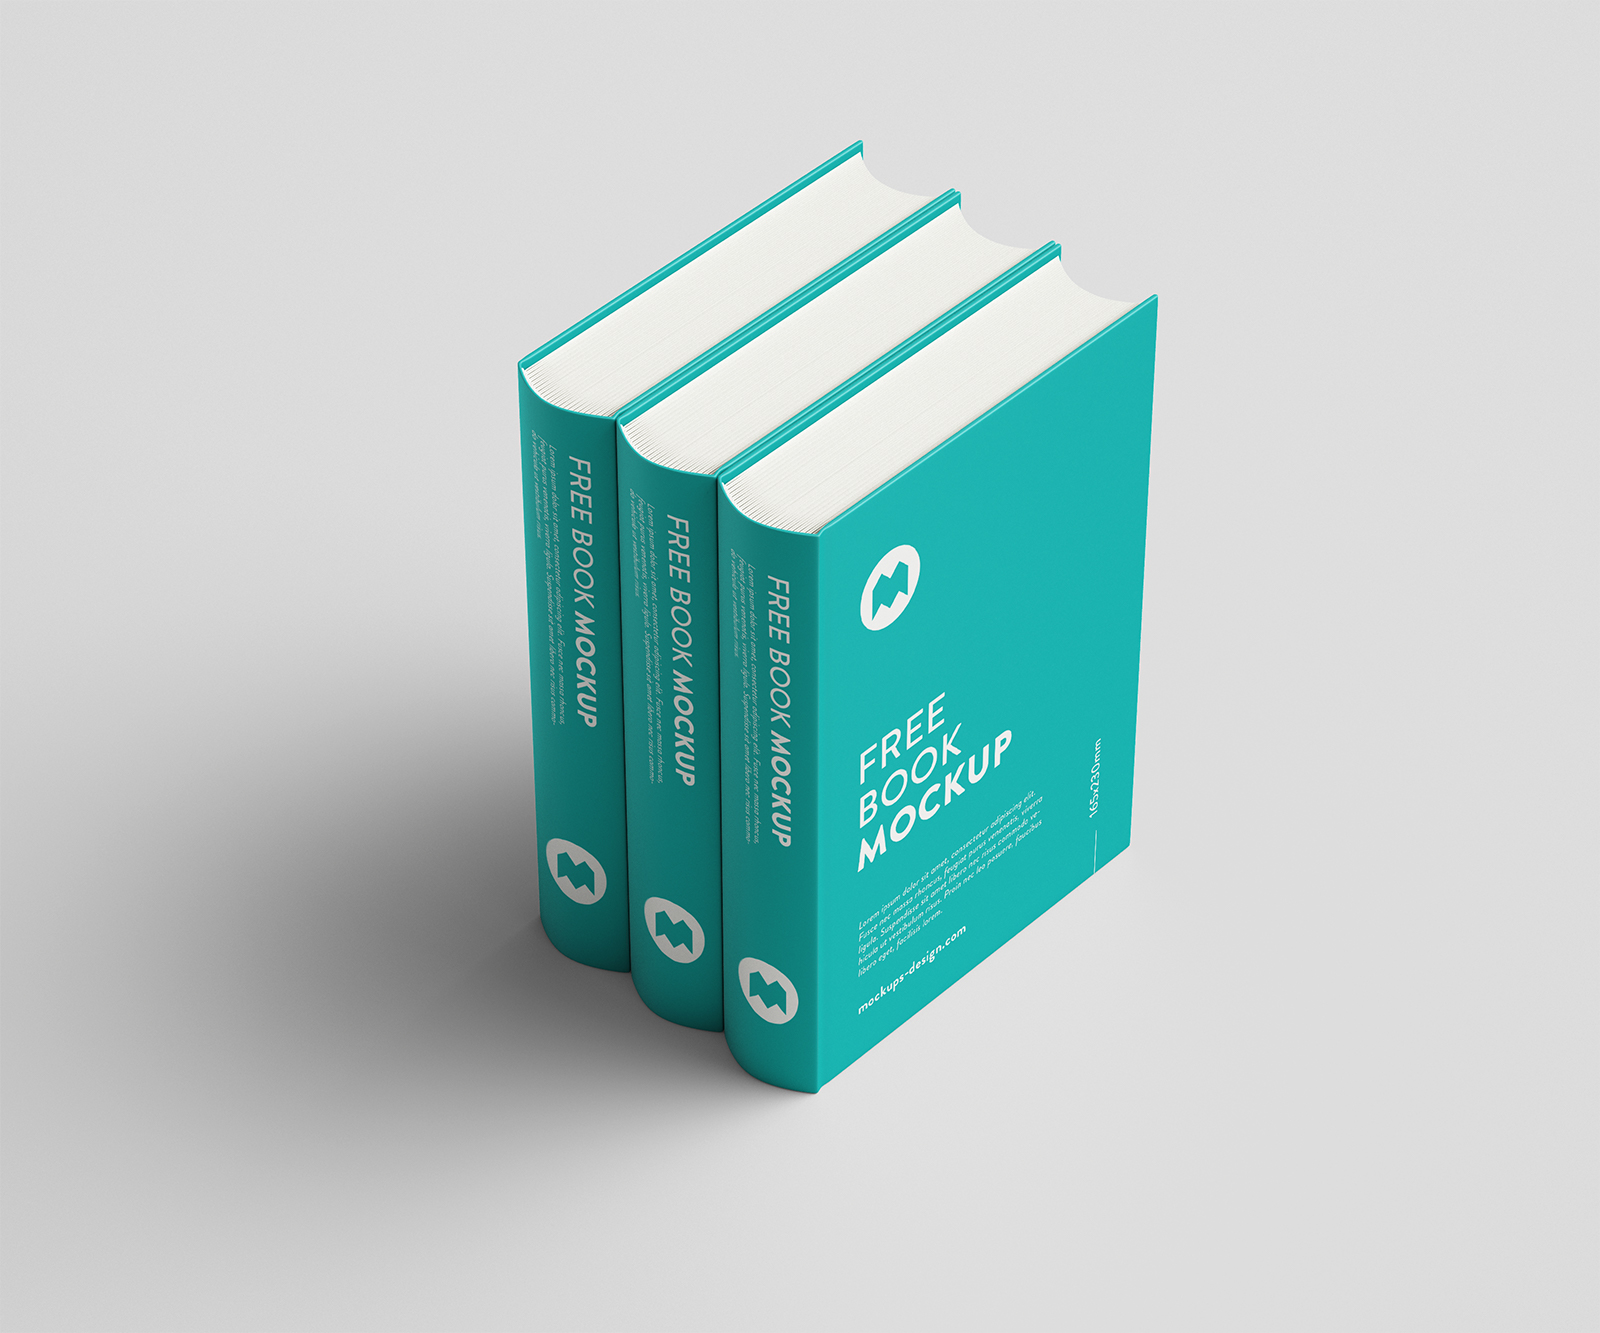 Free Thick Hardcover Book Mockup